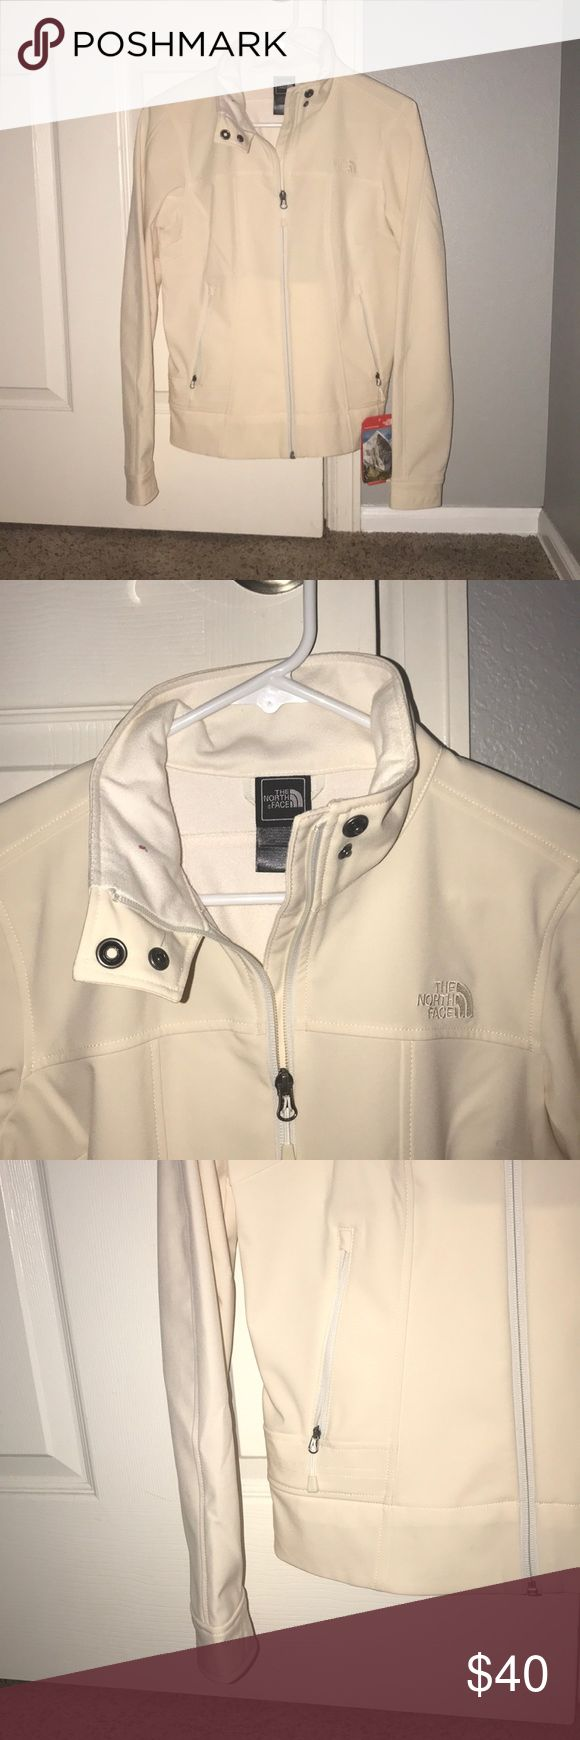 White North Face Jacket Never worn with tags !!! North Face Jackets & Coats